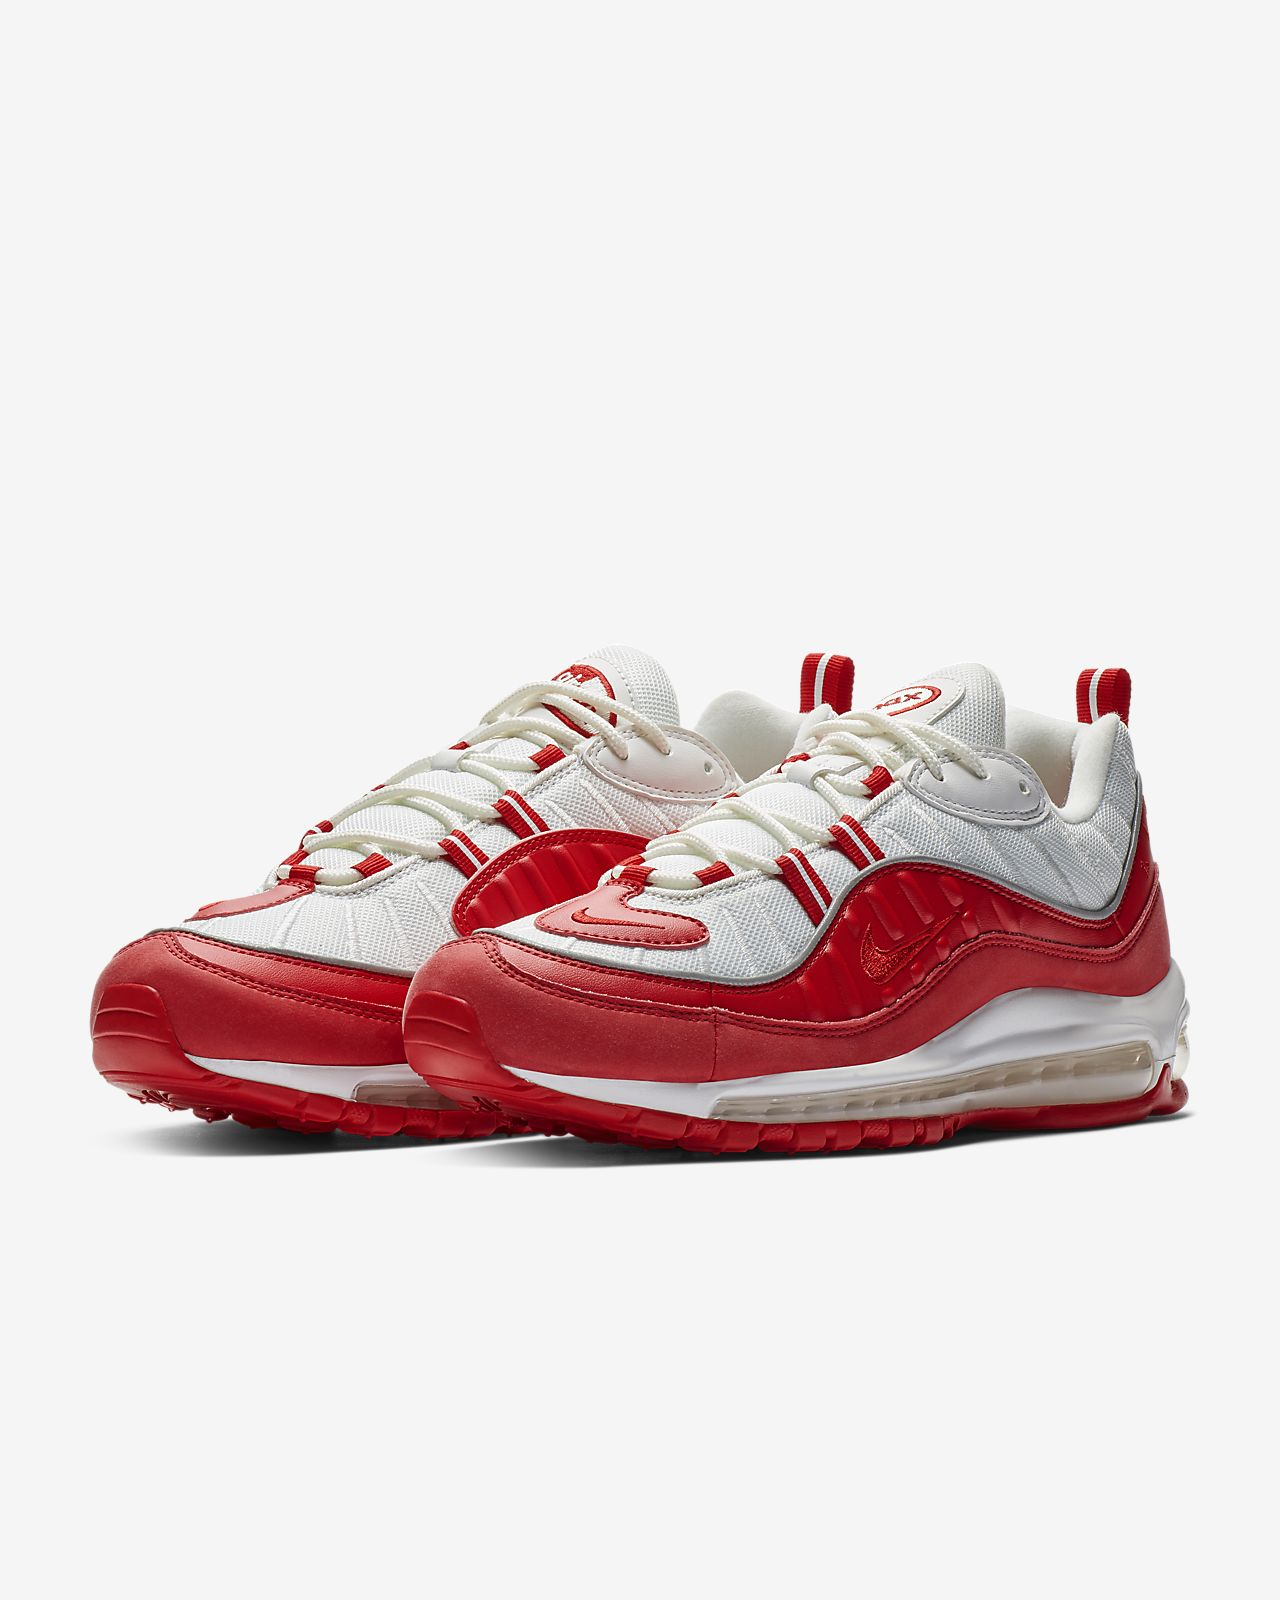 premium selection 88dc1 03032 ... Nike Air Max 98 Men s Shoe